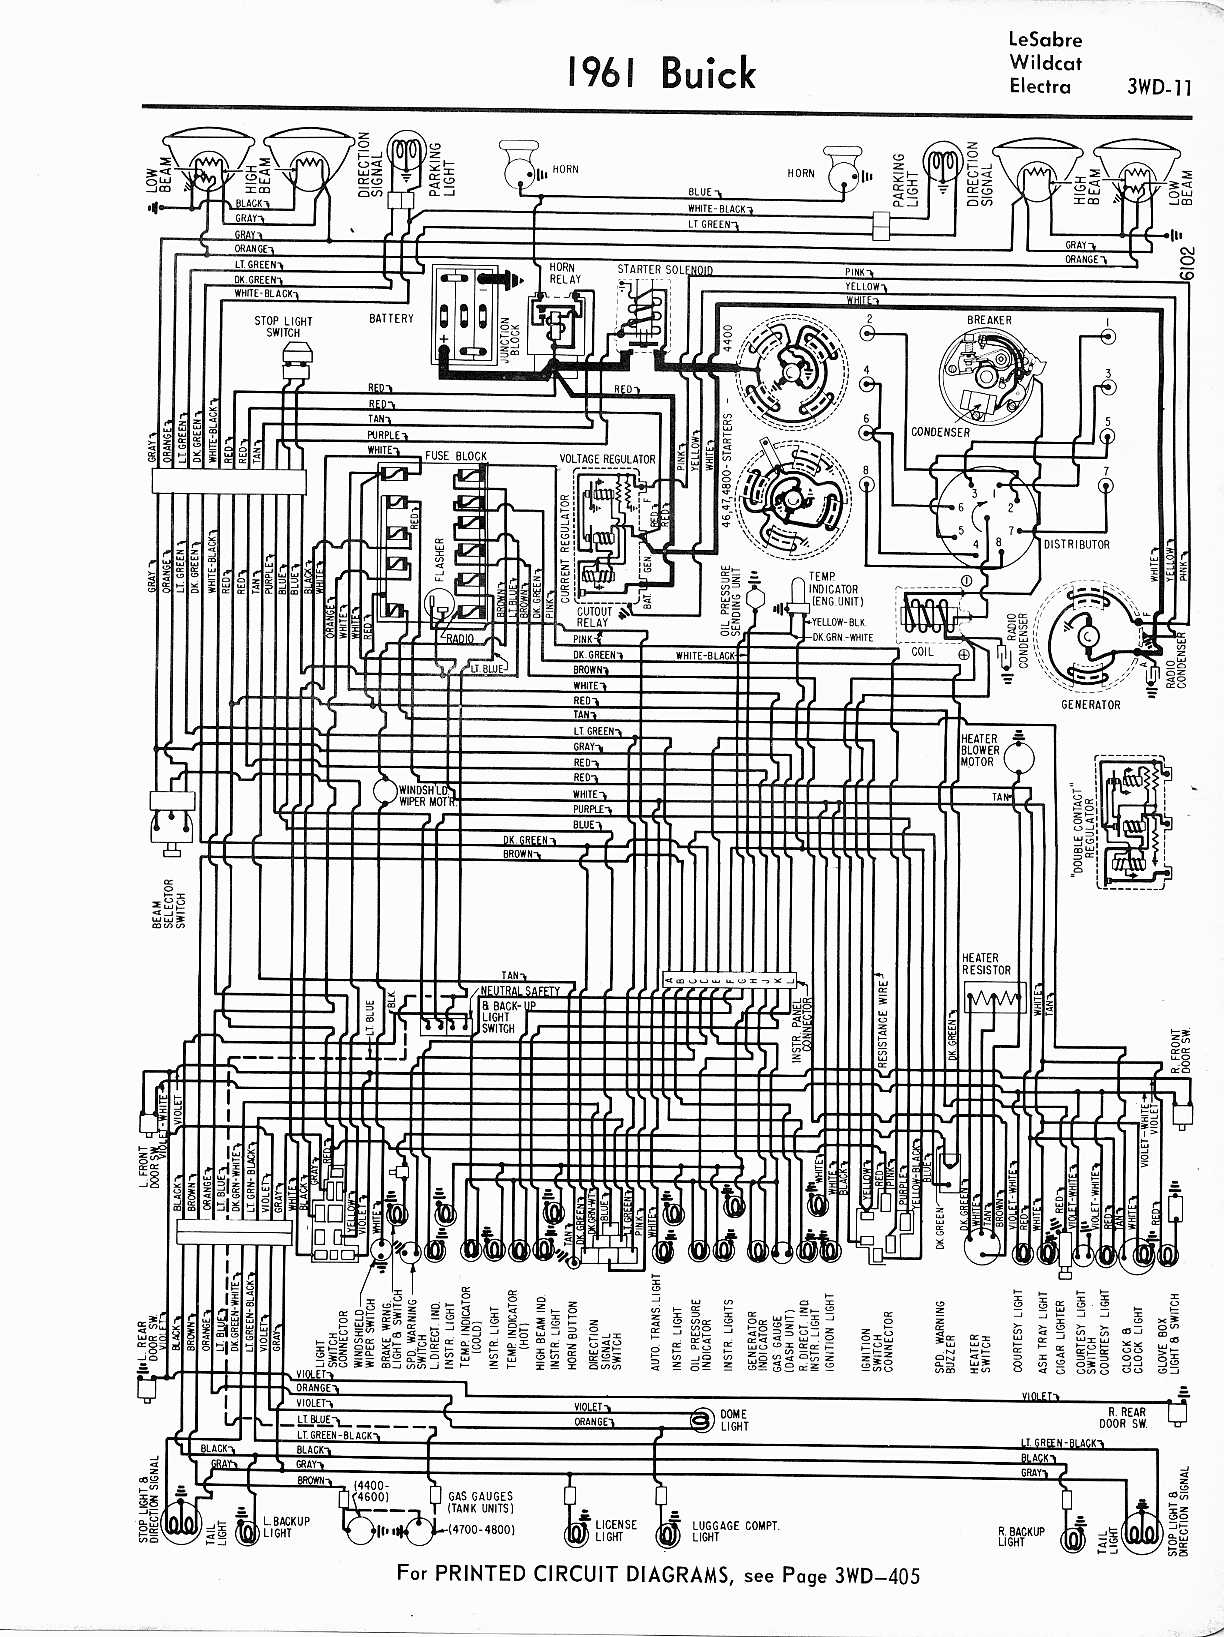 2001 Buick Century Wiring Diagram from www.oldcarmanualproject.com